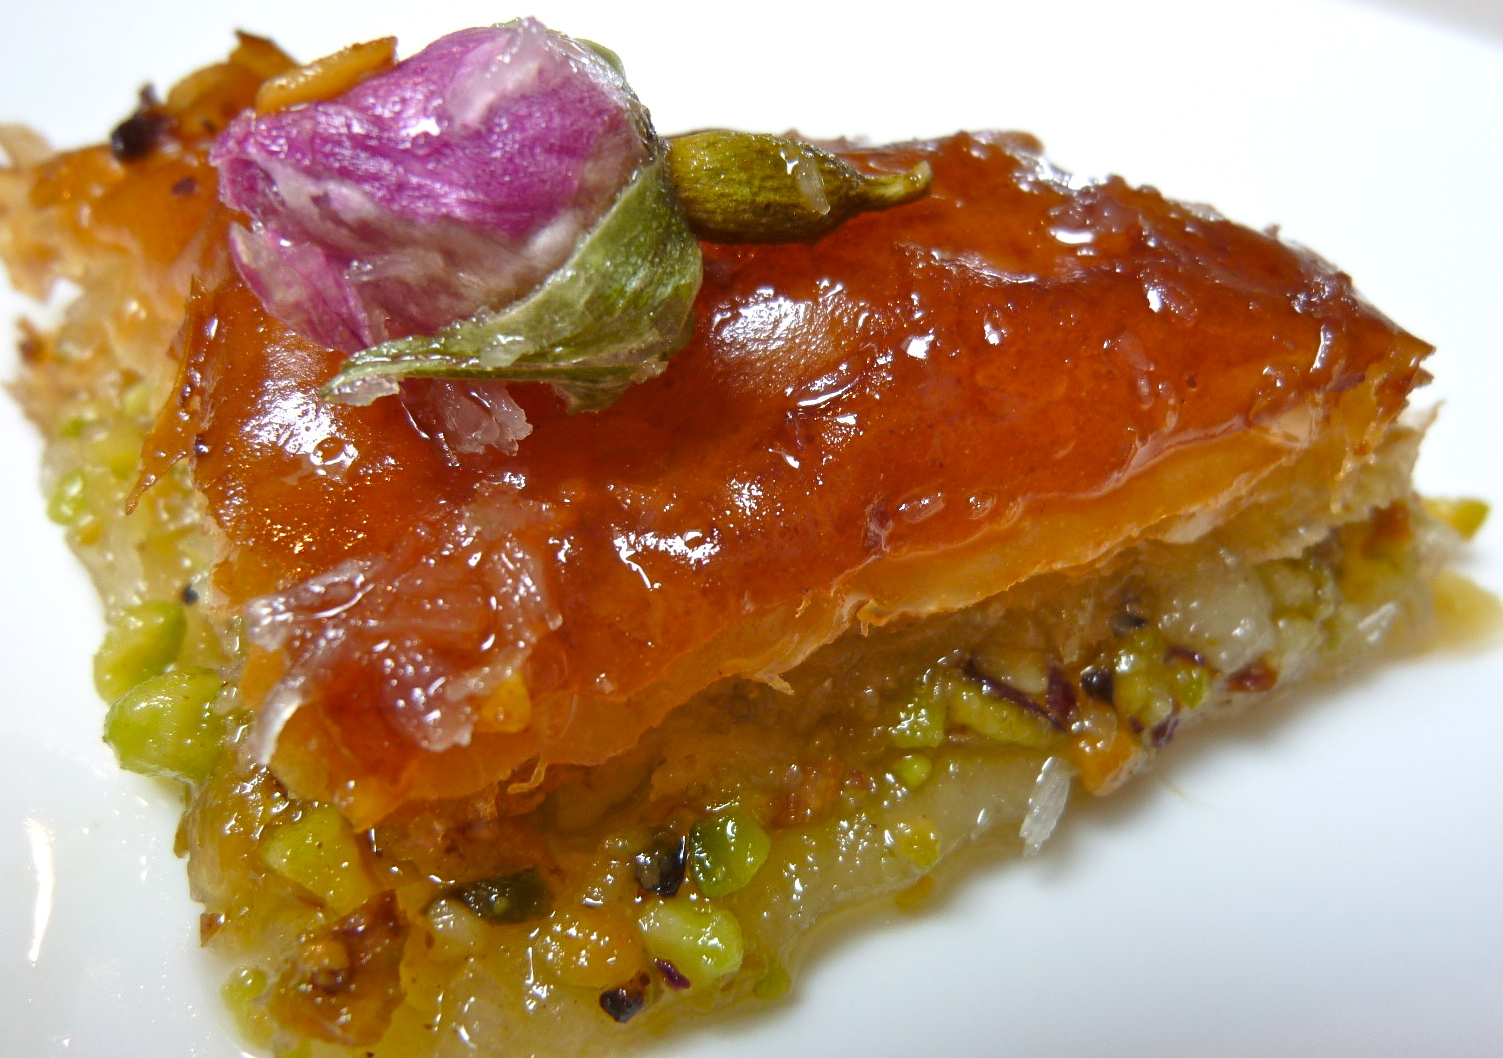 ... of a Mad Hausfrau: Agave Rose Baklava with Pistachio & Macadamia Nuts